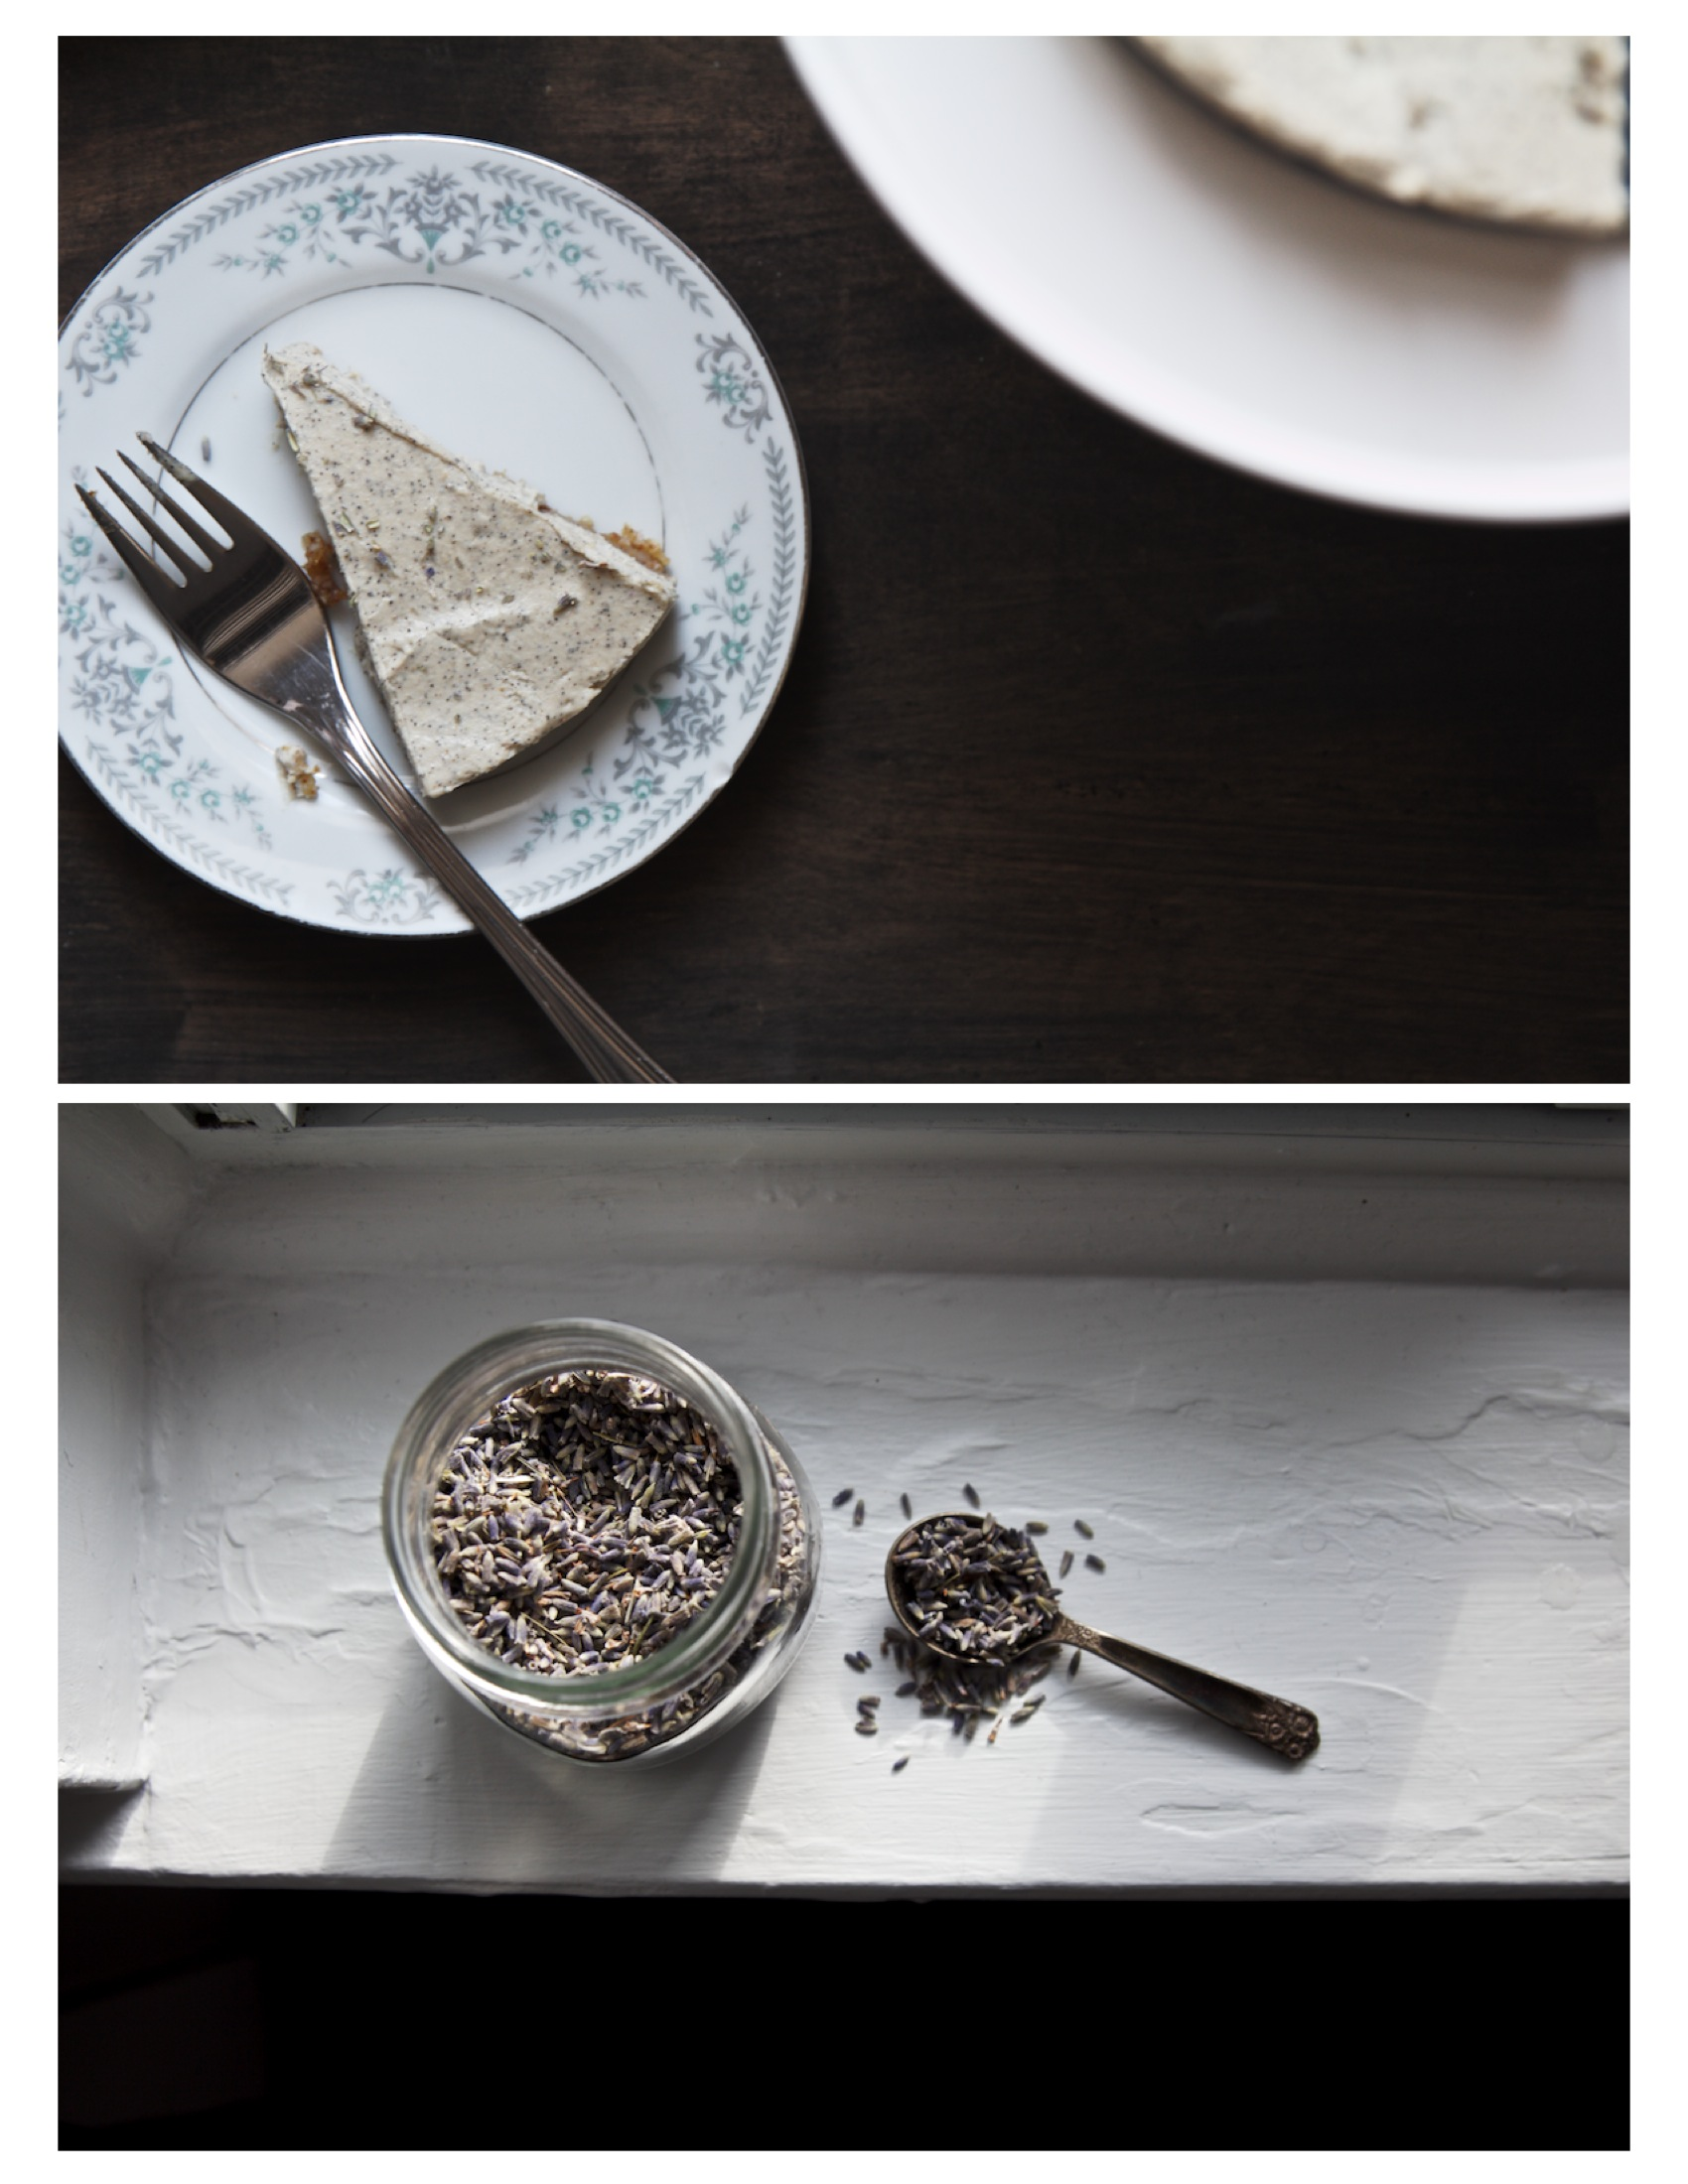 earl grey lavender cheesecake